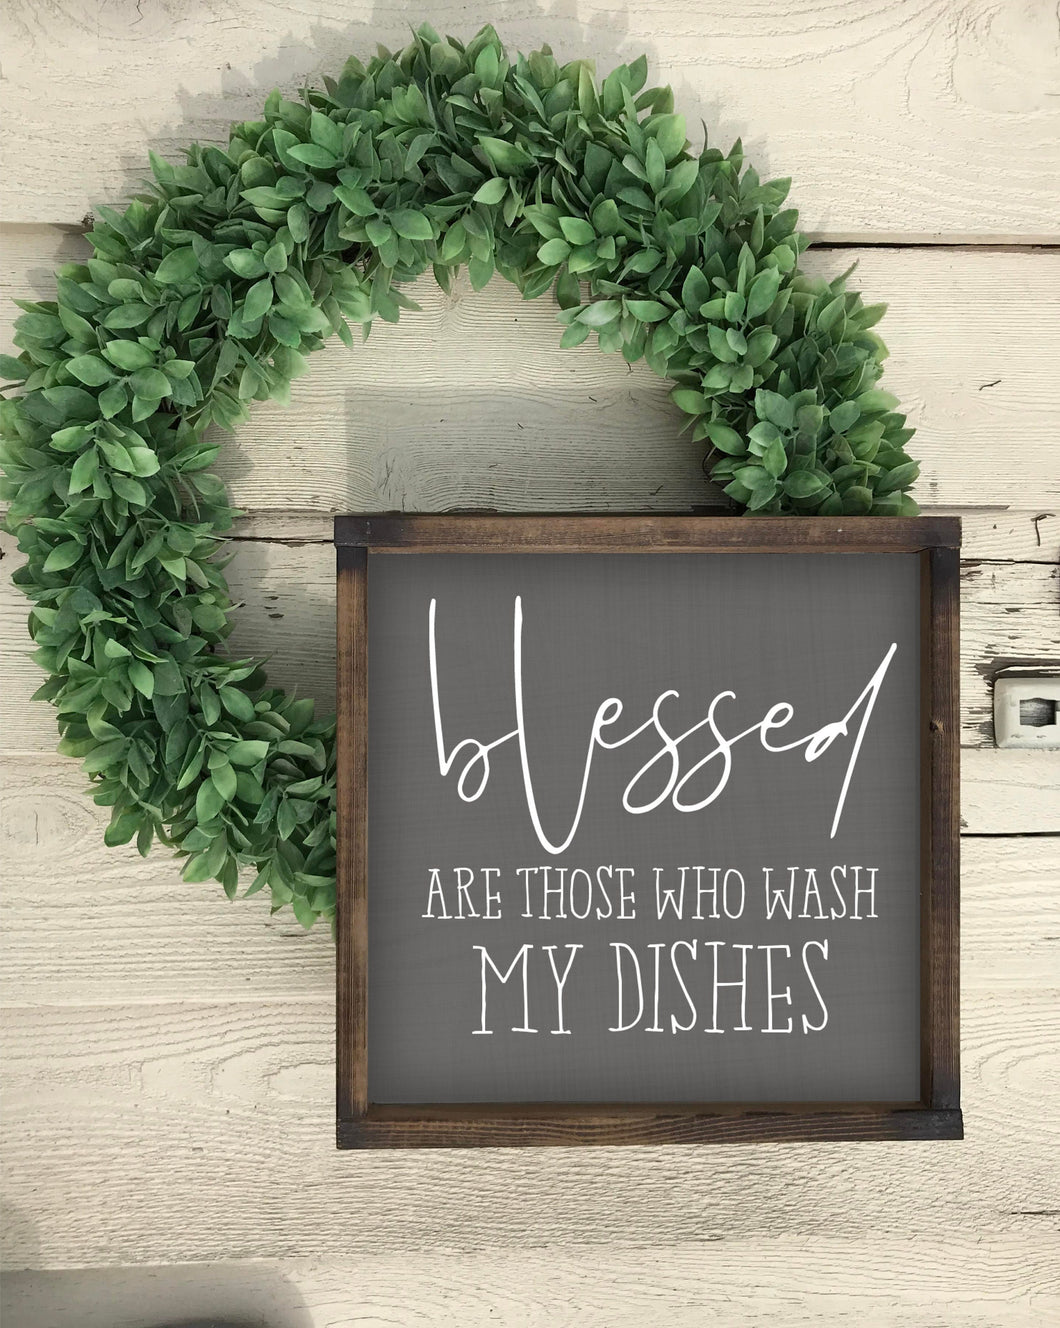 Kitchen sign // Dishes sign // dirty dishes sign // tiered tray sign // mini sign// funny kitchen sign // kitchen decor // kitchen humour